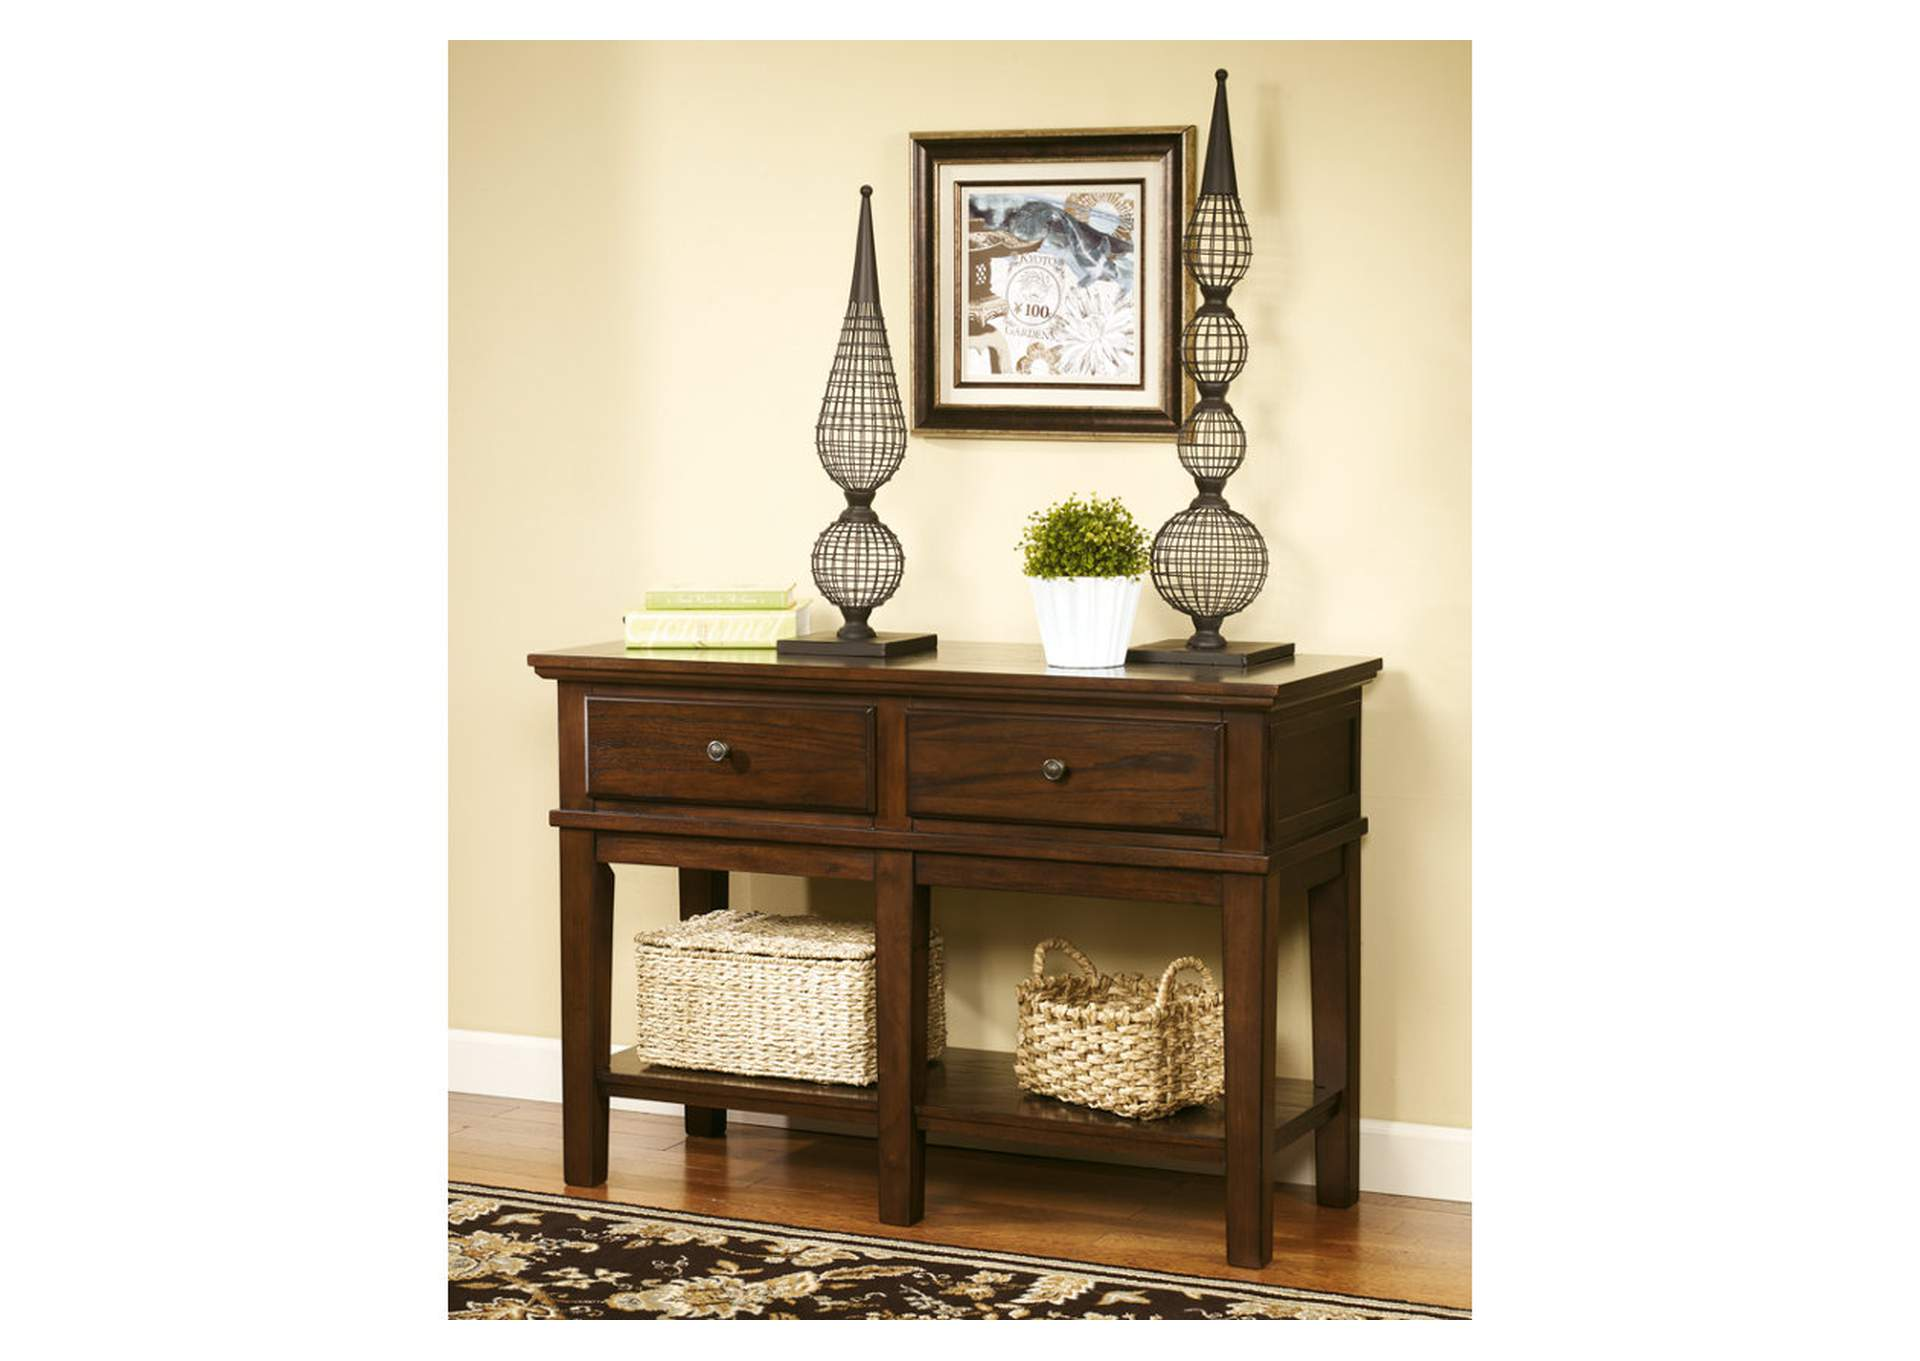 Discount Furniture Outlet Gately Console Sofa Table